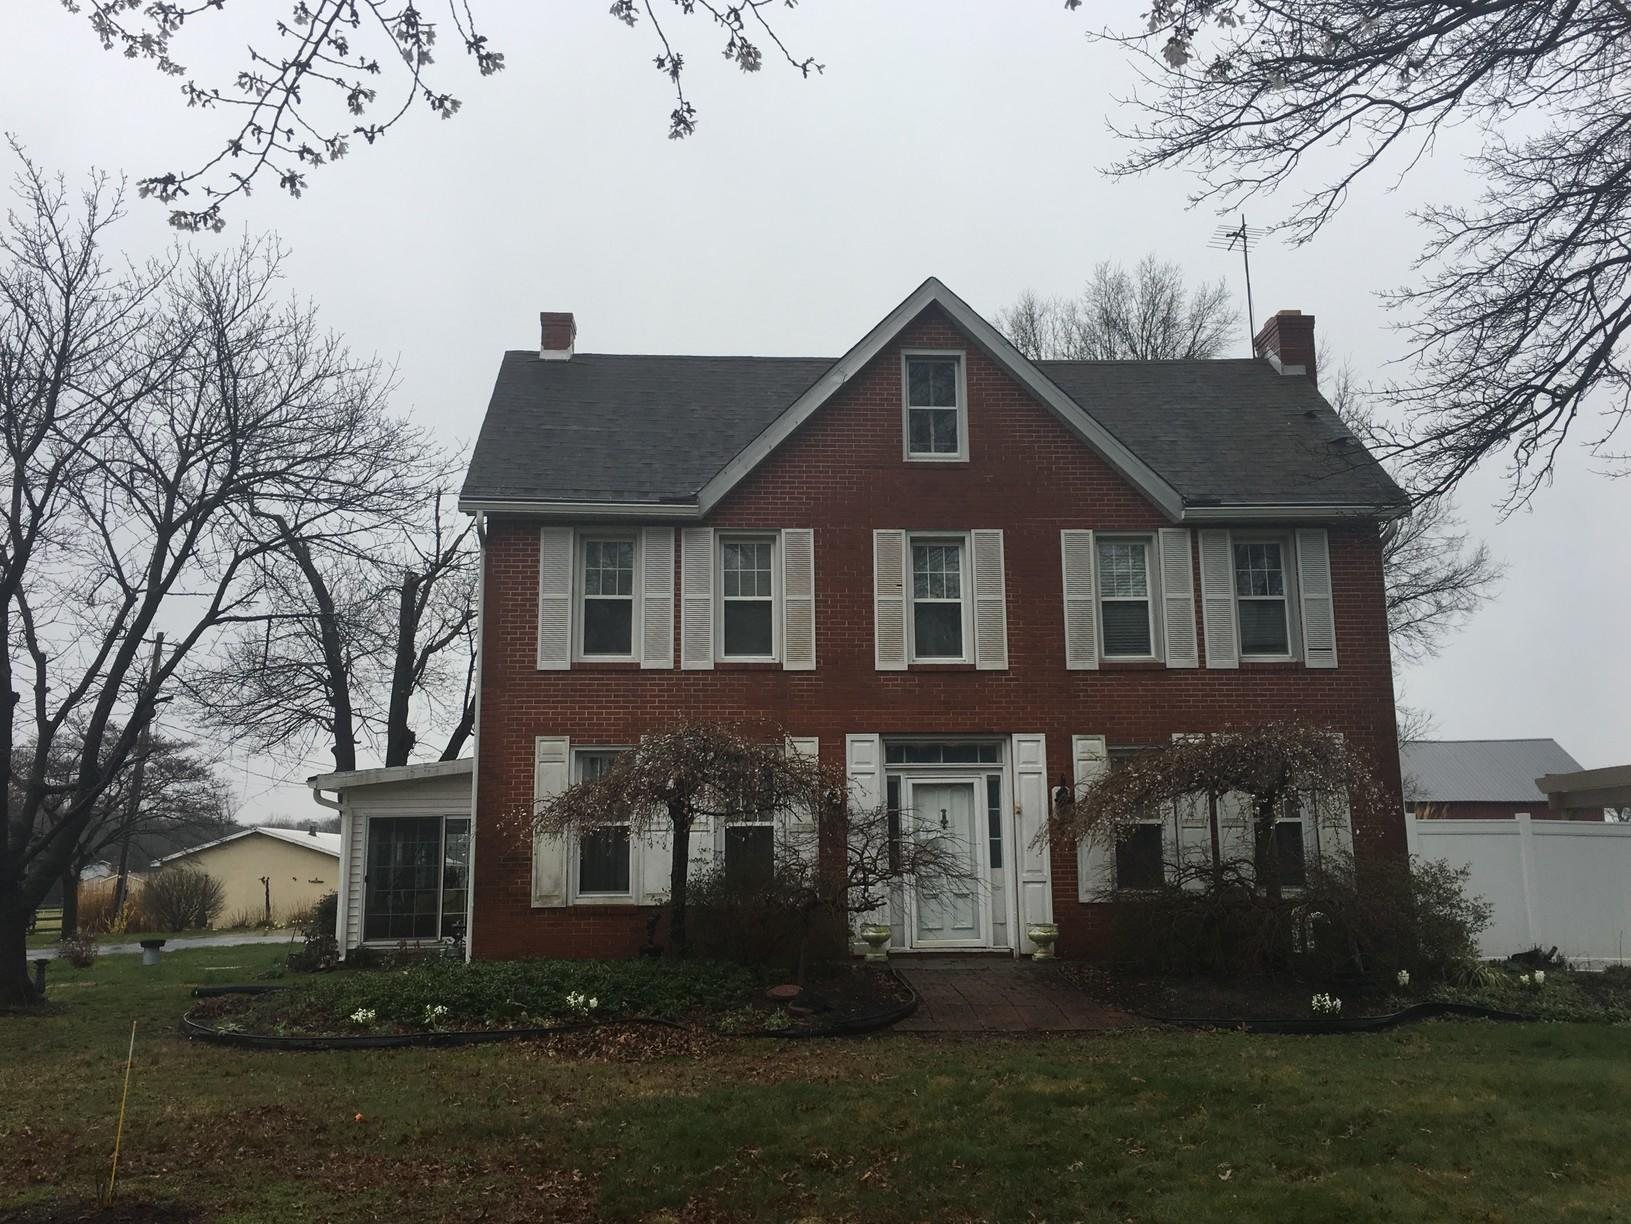 Replacing Storm-Damaged Shingles of Historic Home in DE